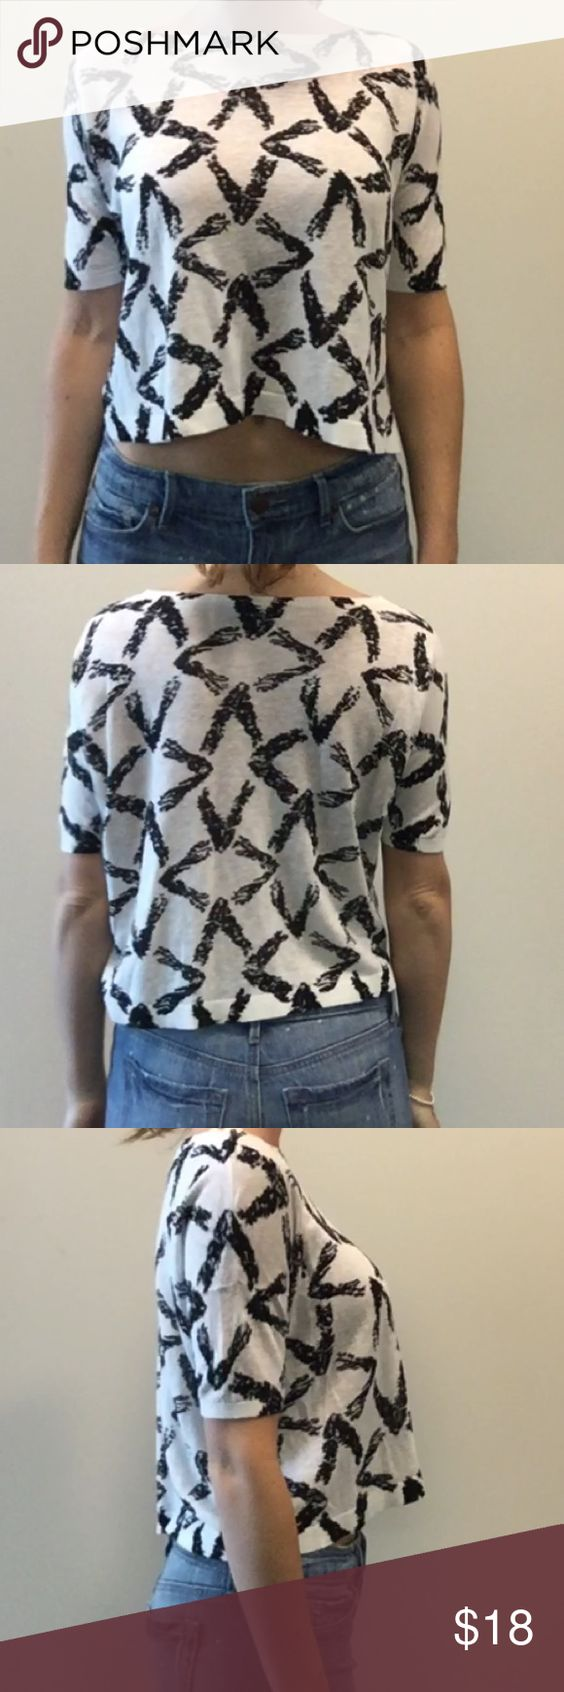 """Ann Taylor Loft Crop Top Sweater Black and white geometric crop top sweater. Ann Taylor Loft Size XS.  Machine washable. Model is 5'8"""" with 28"""" waist and 36"""" bust. LOFT Tops Crop Tops"""